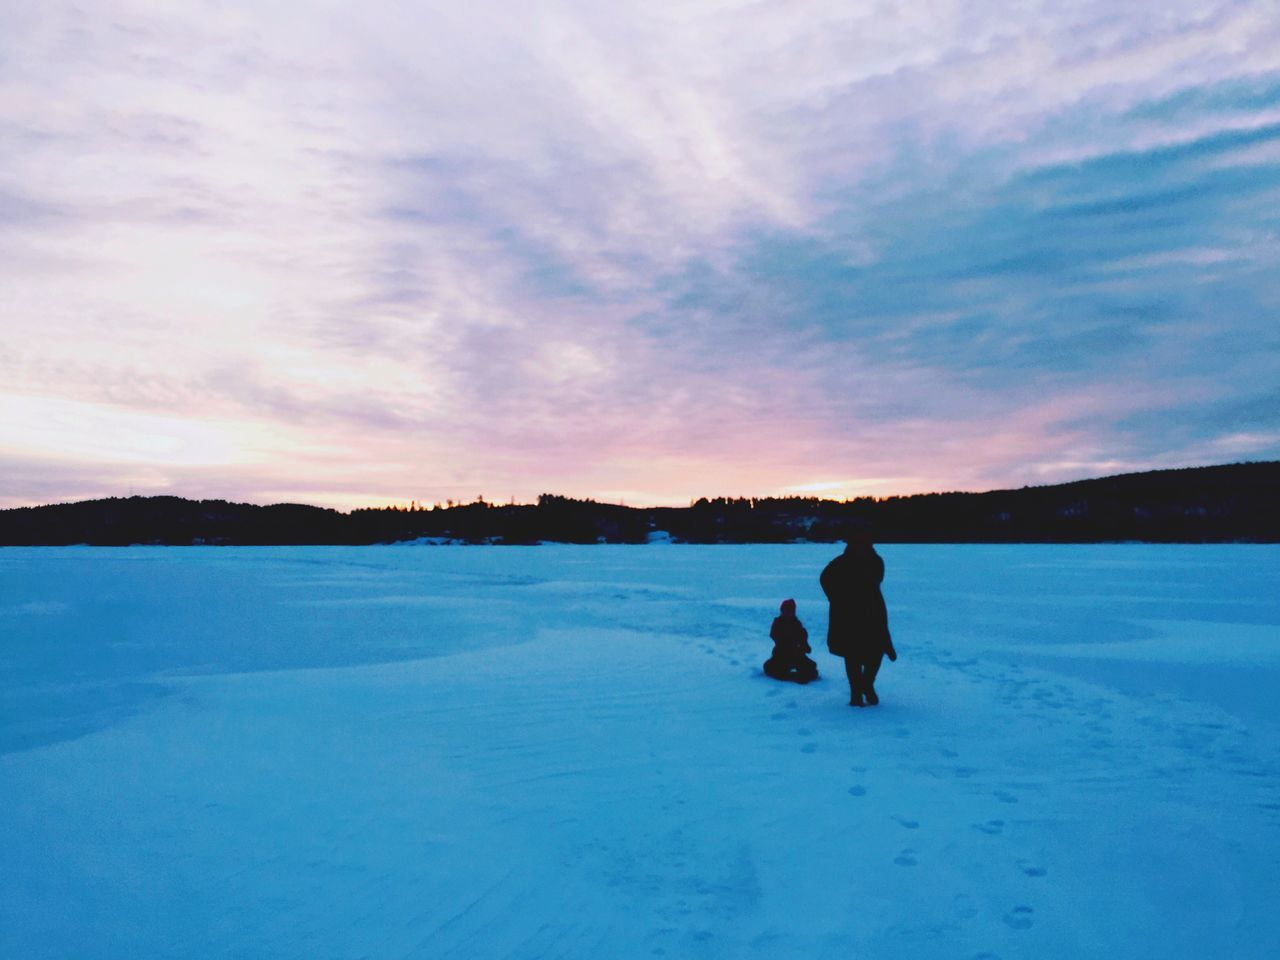 Winter Real People Snow Cold Temperature Sky One Person Lifestyles Nature Leisure Activity Full Length Sunset Beauty In Nature Rear View Scenics Outdoors Warm Clothing Silhouette Landscape Day